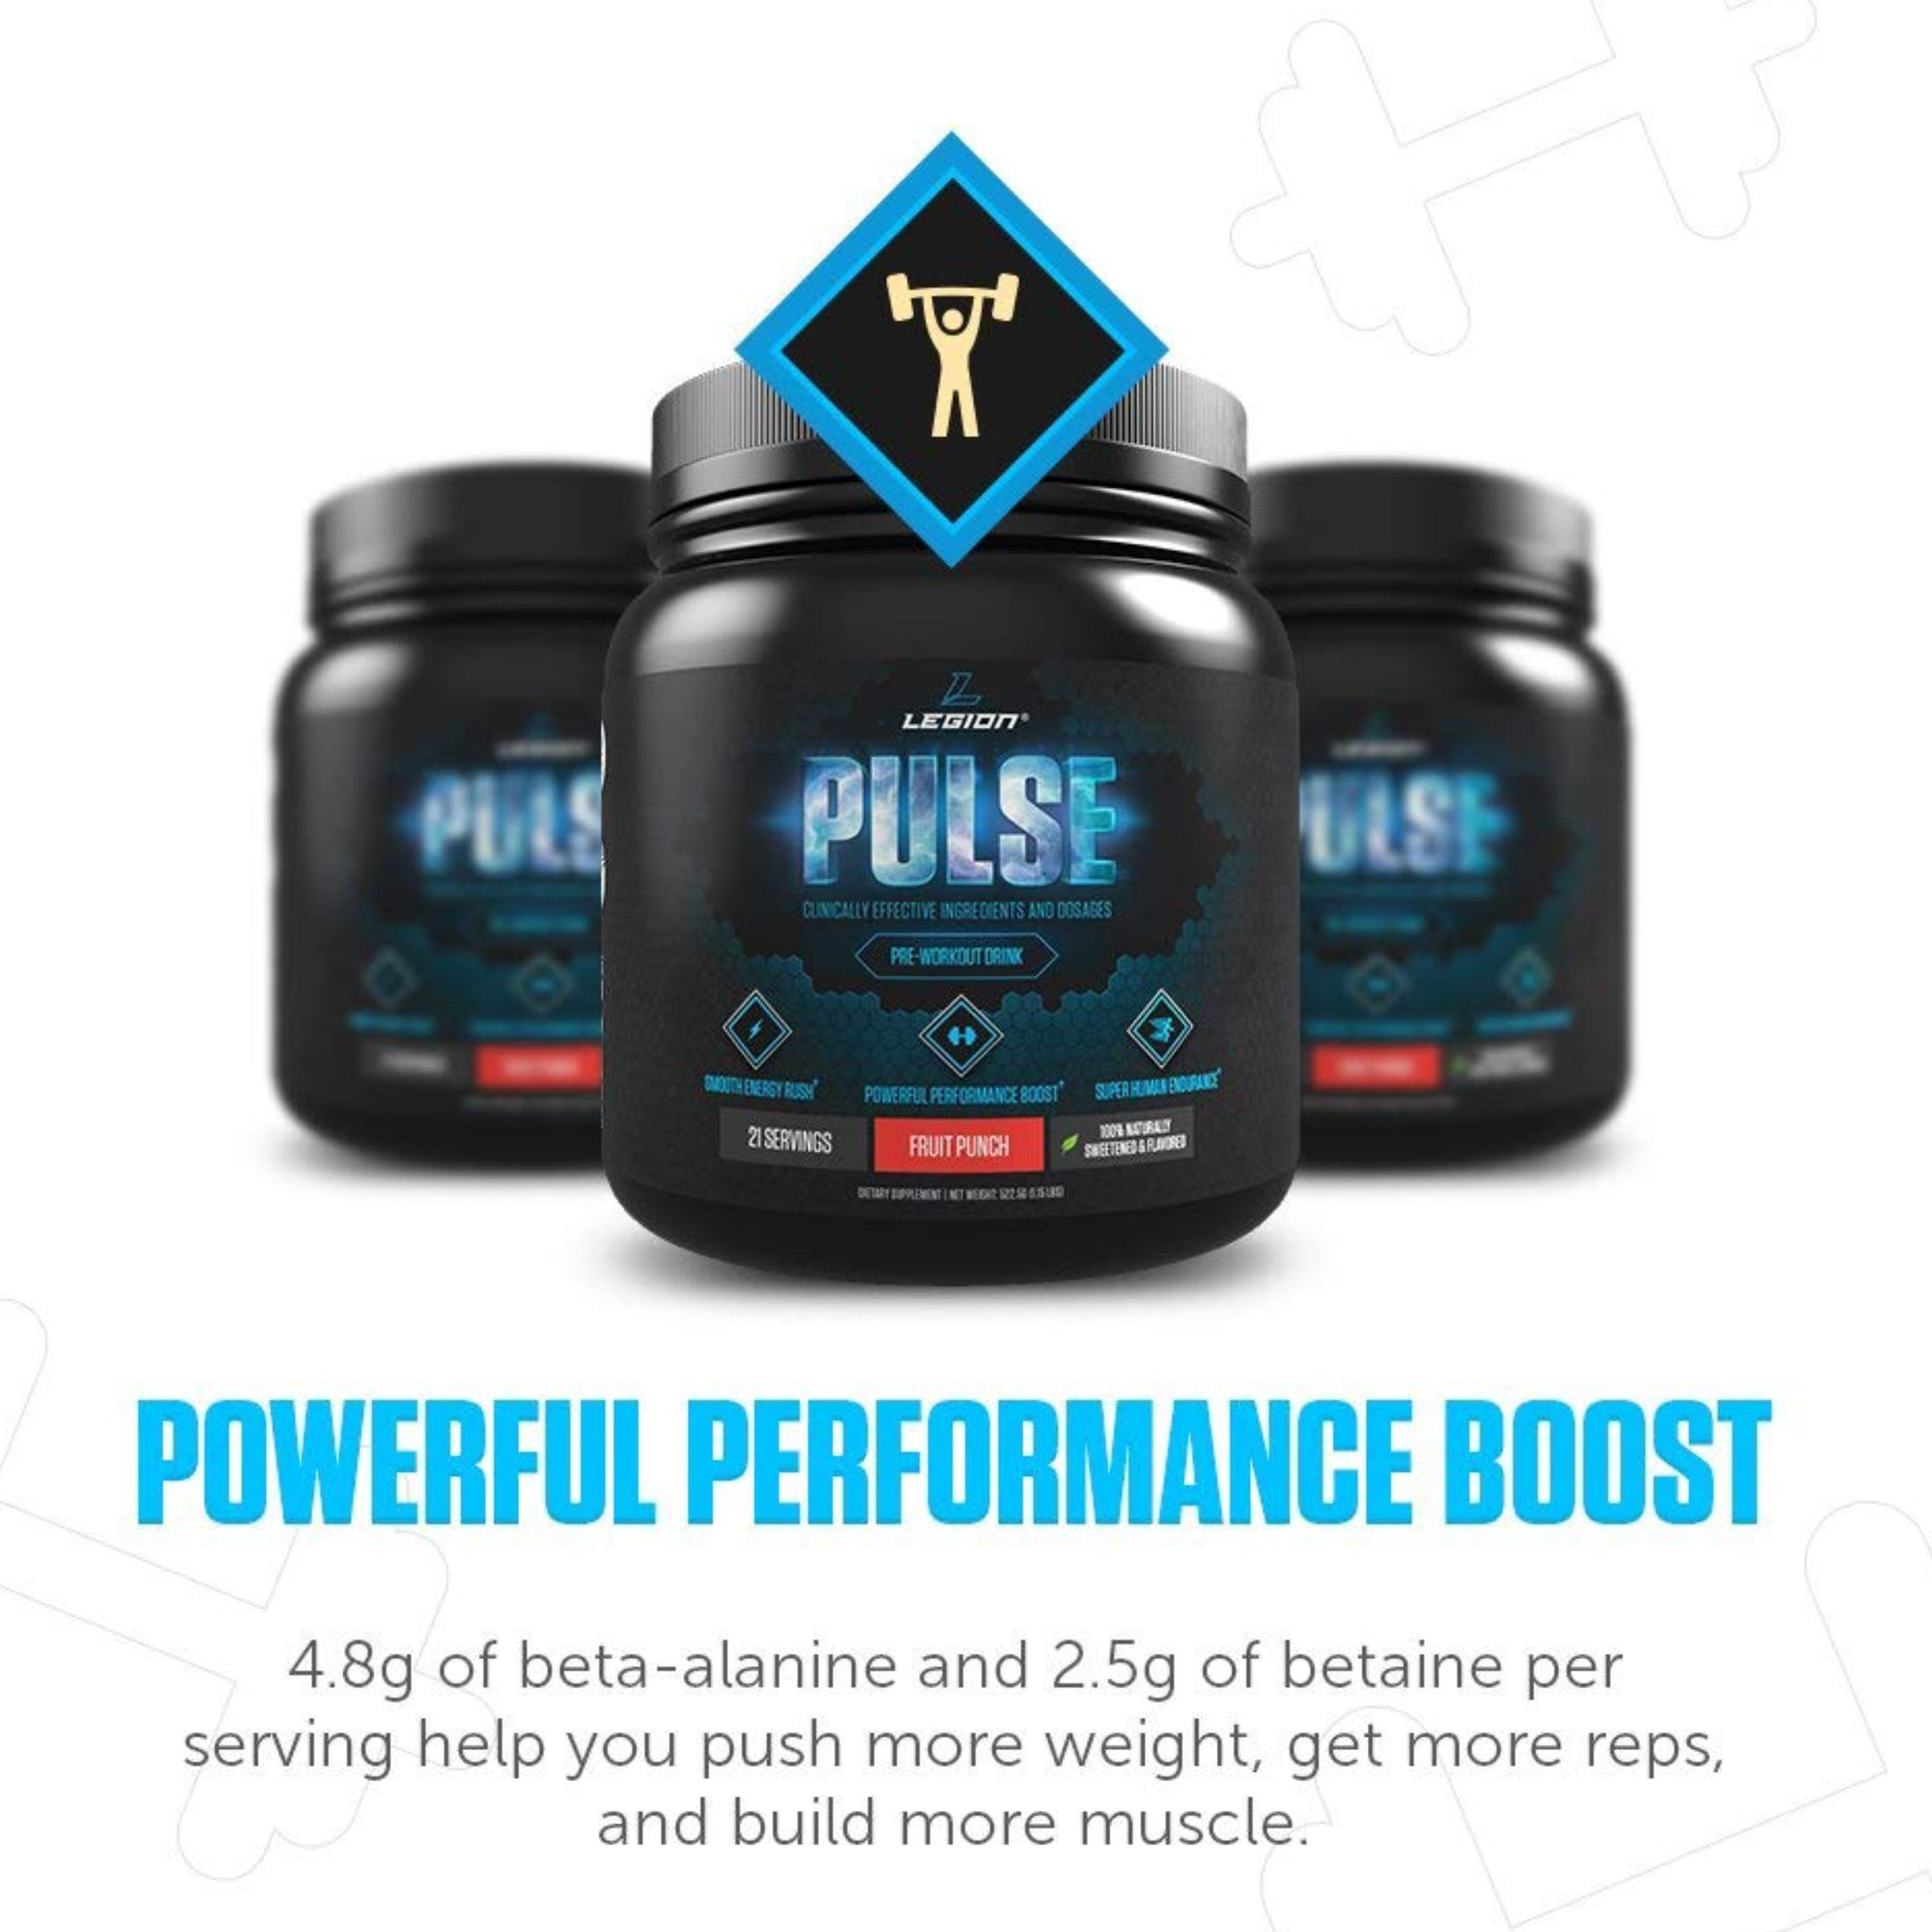 LEGION'S PULSE PRE-WORKOUT